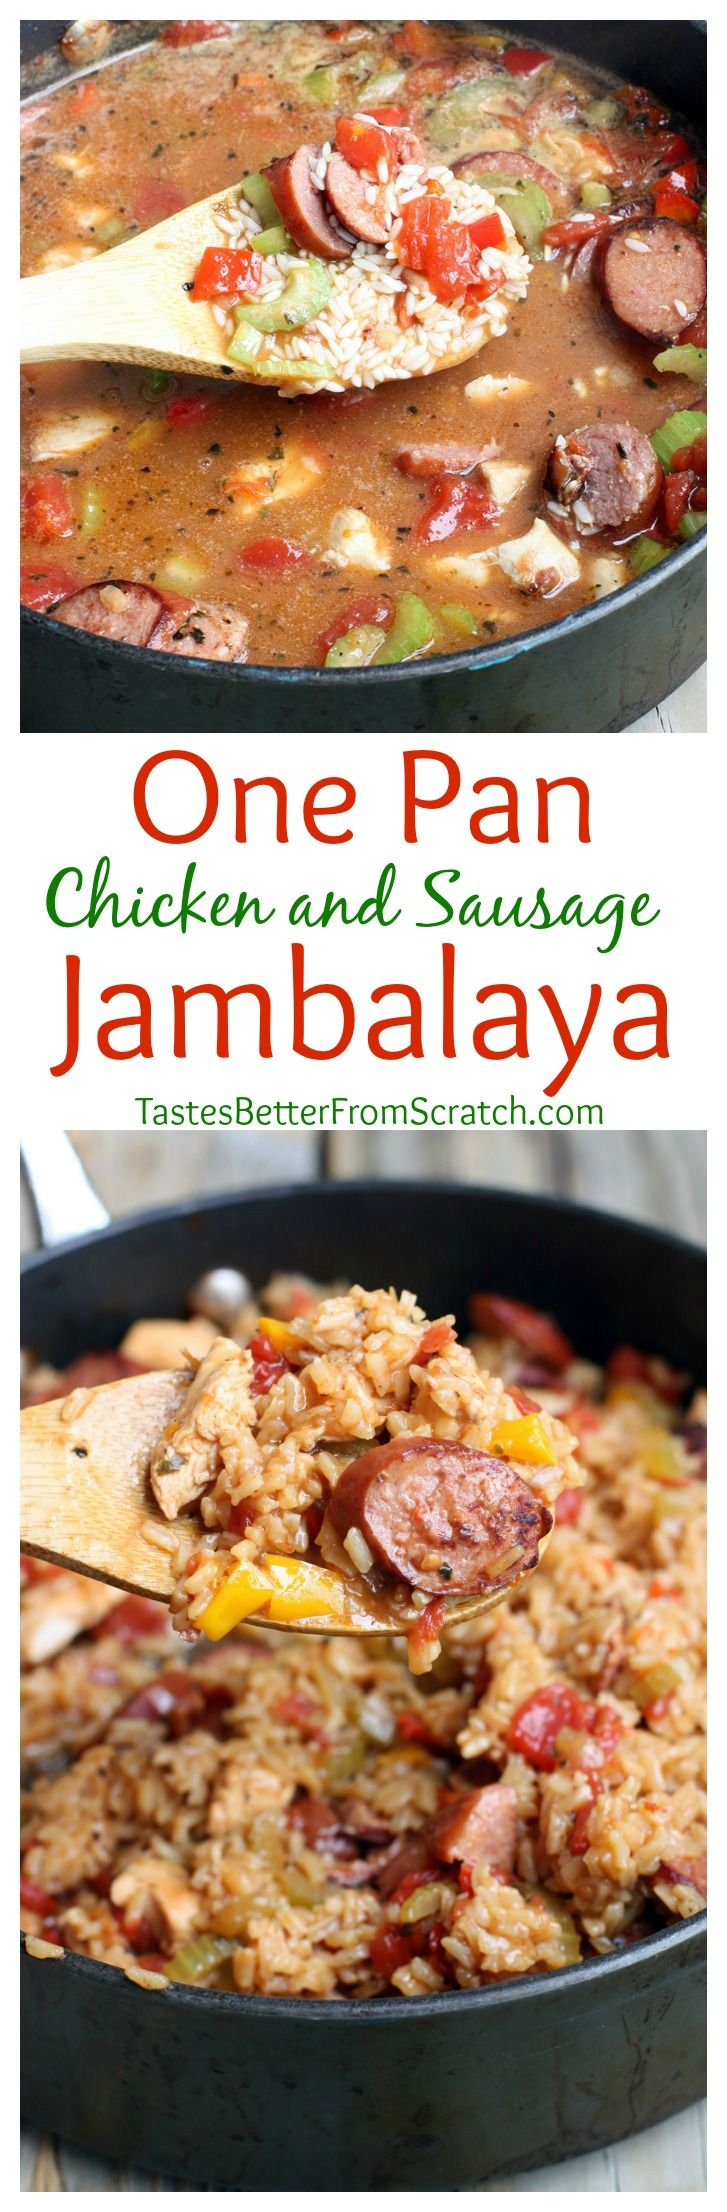 One Pan Chicken and Sausage Jambalaya recipe on MyRecipeMagic.com